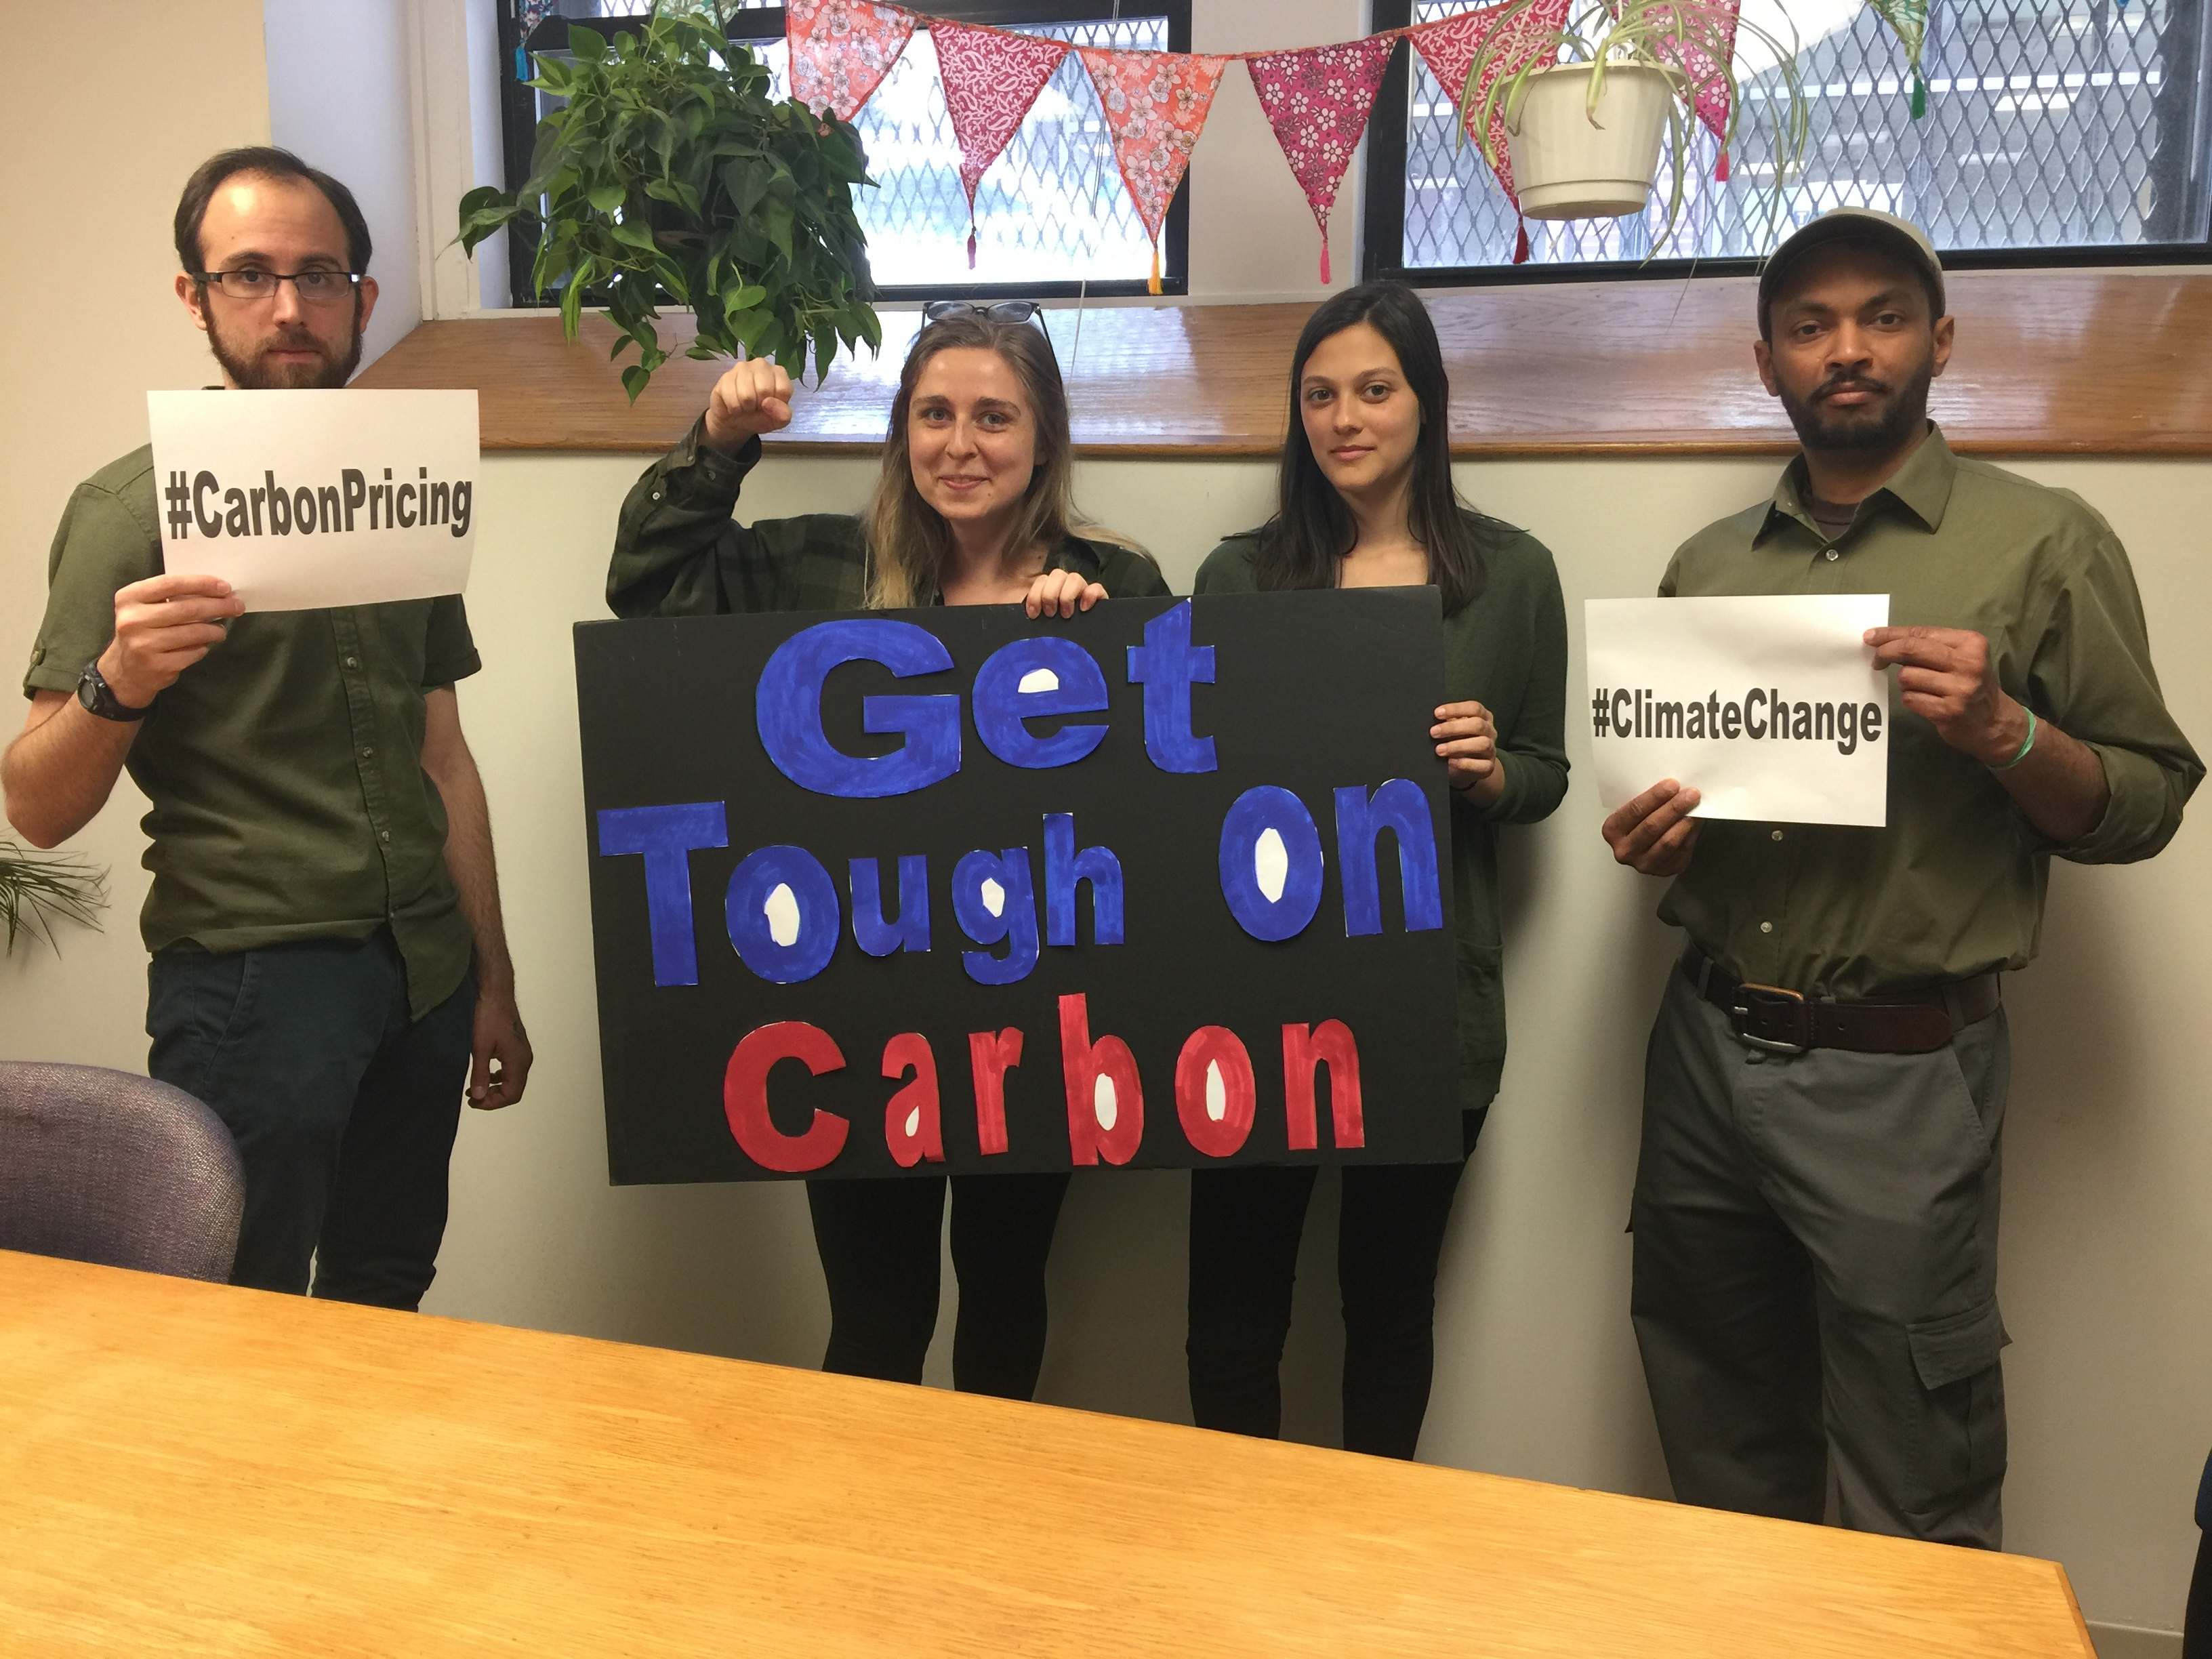 Get Tough on Carbon